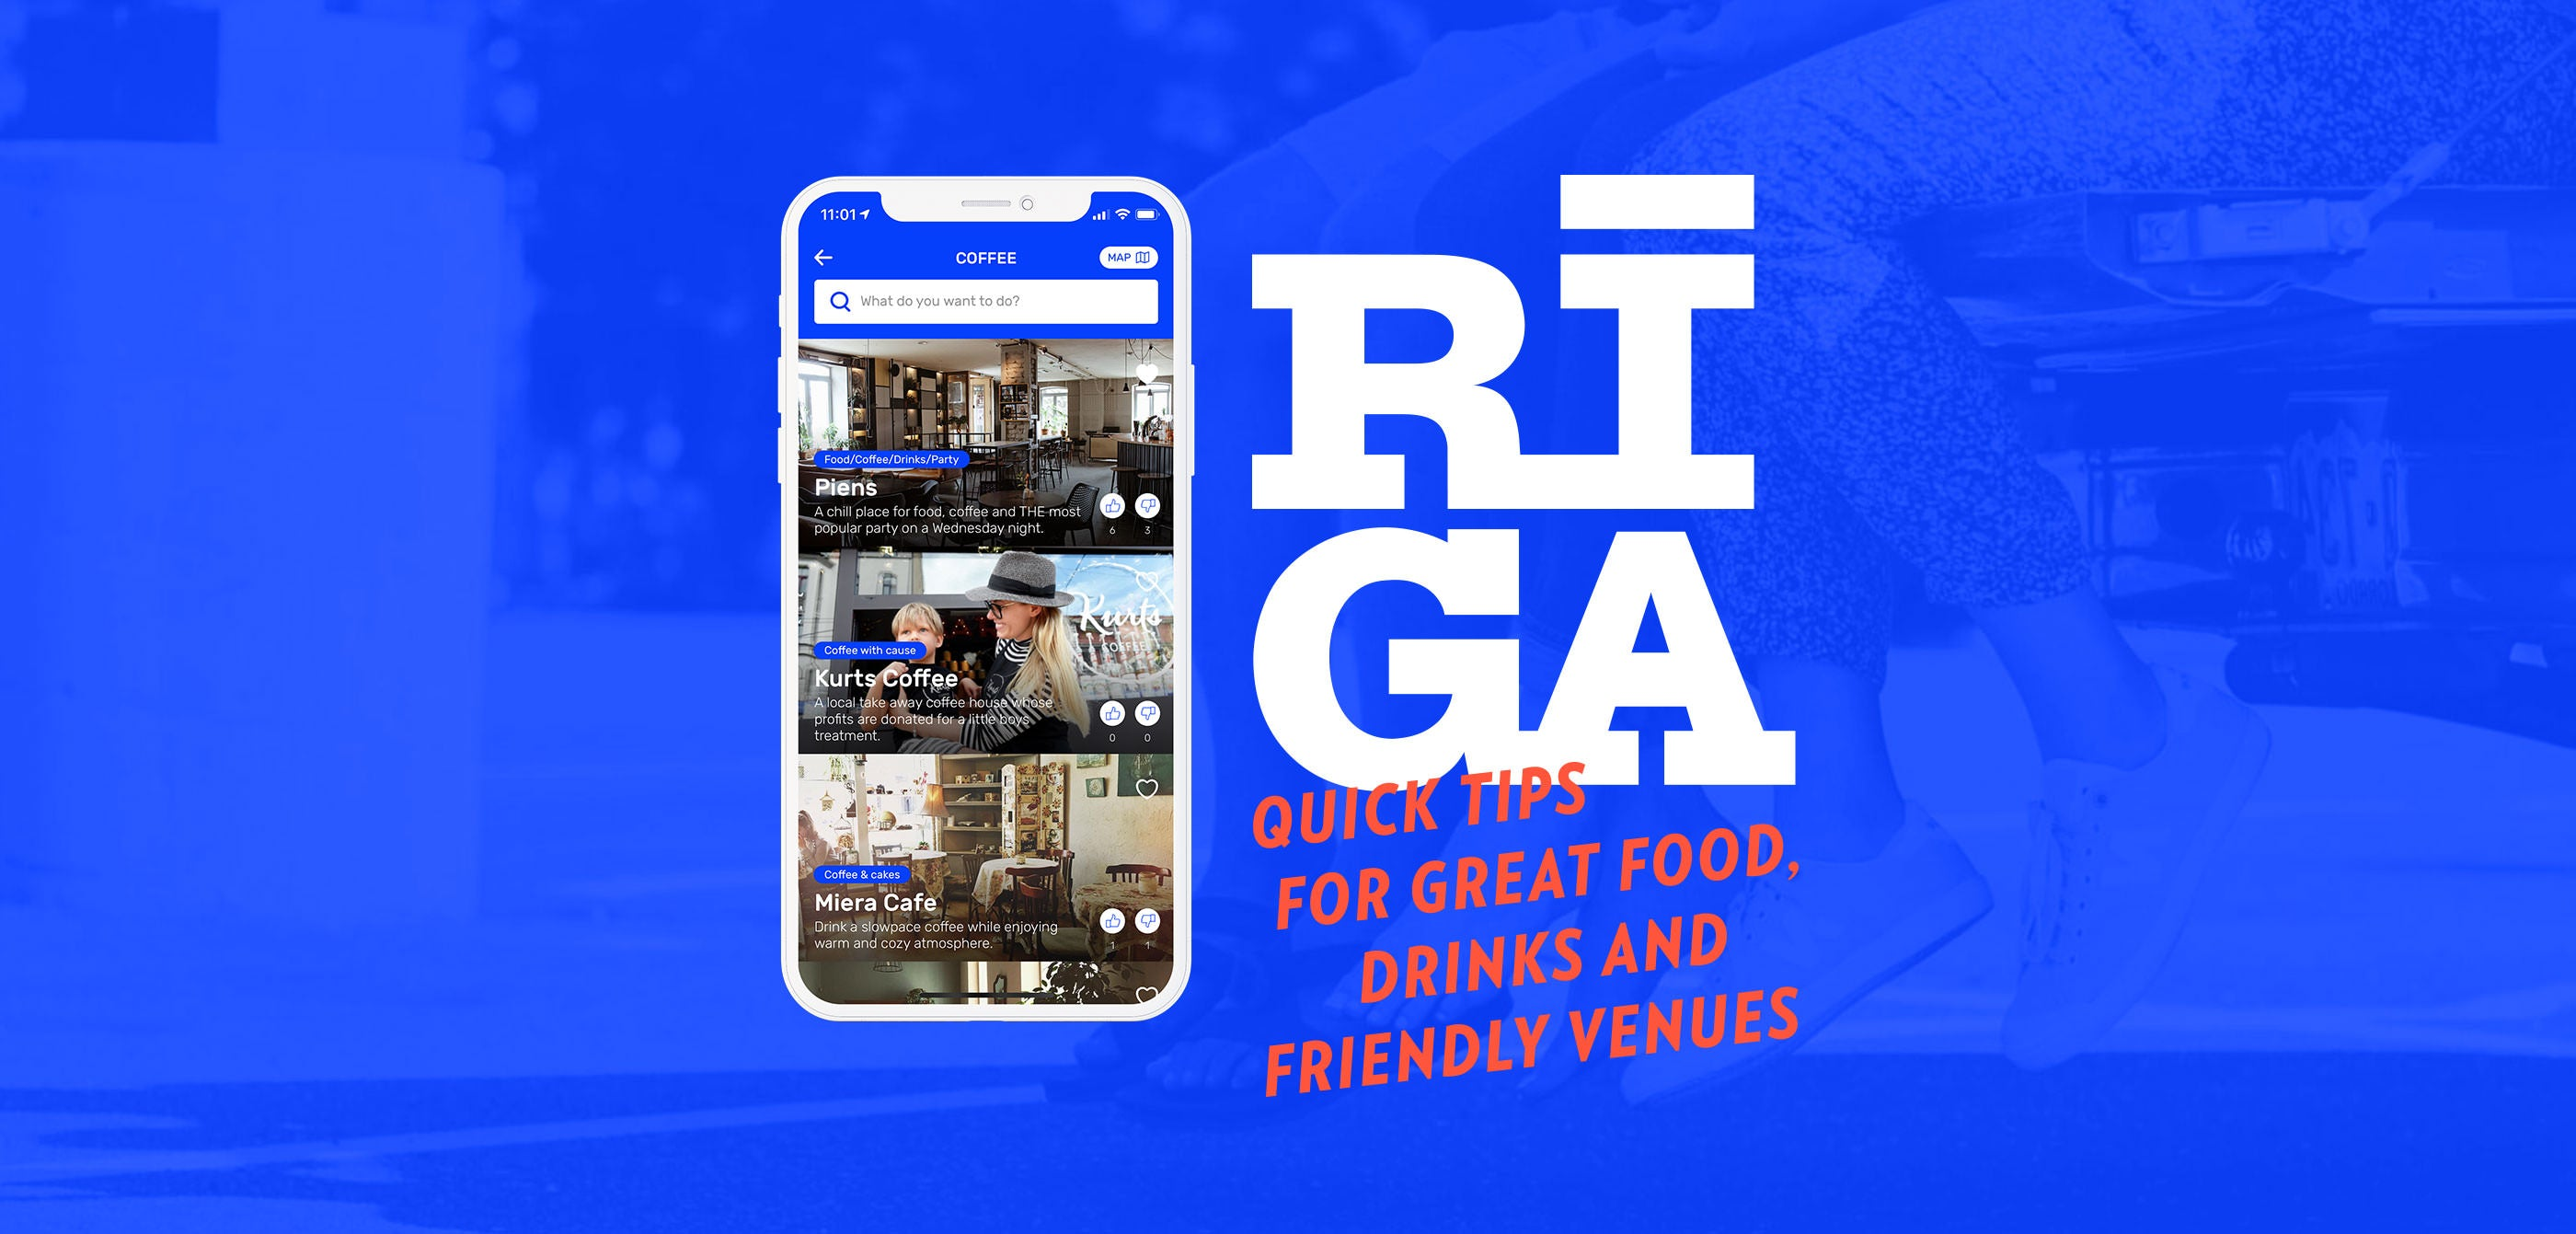 RIGA Original city guide app